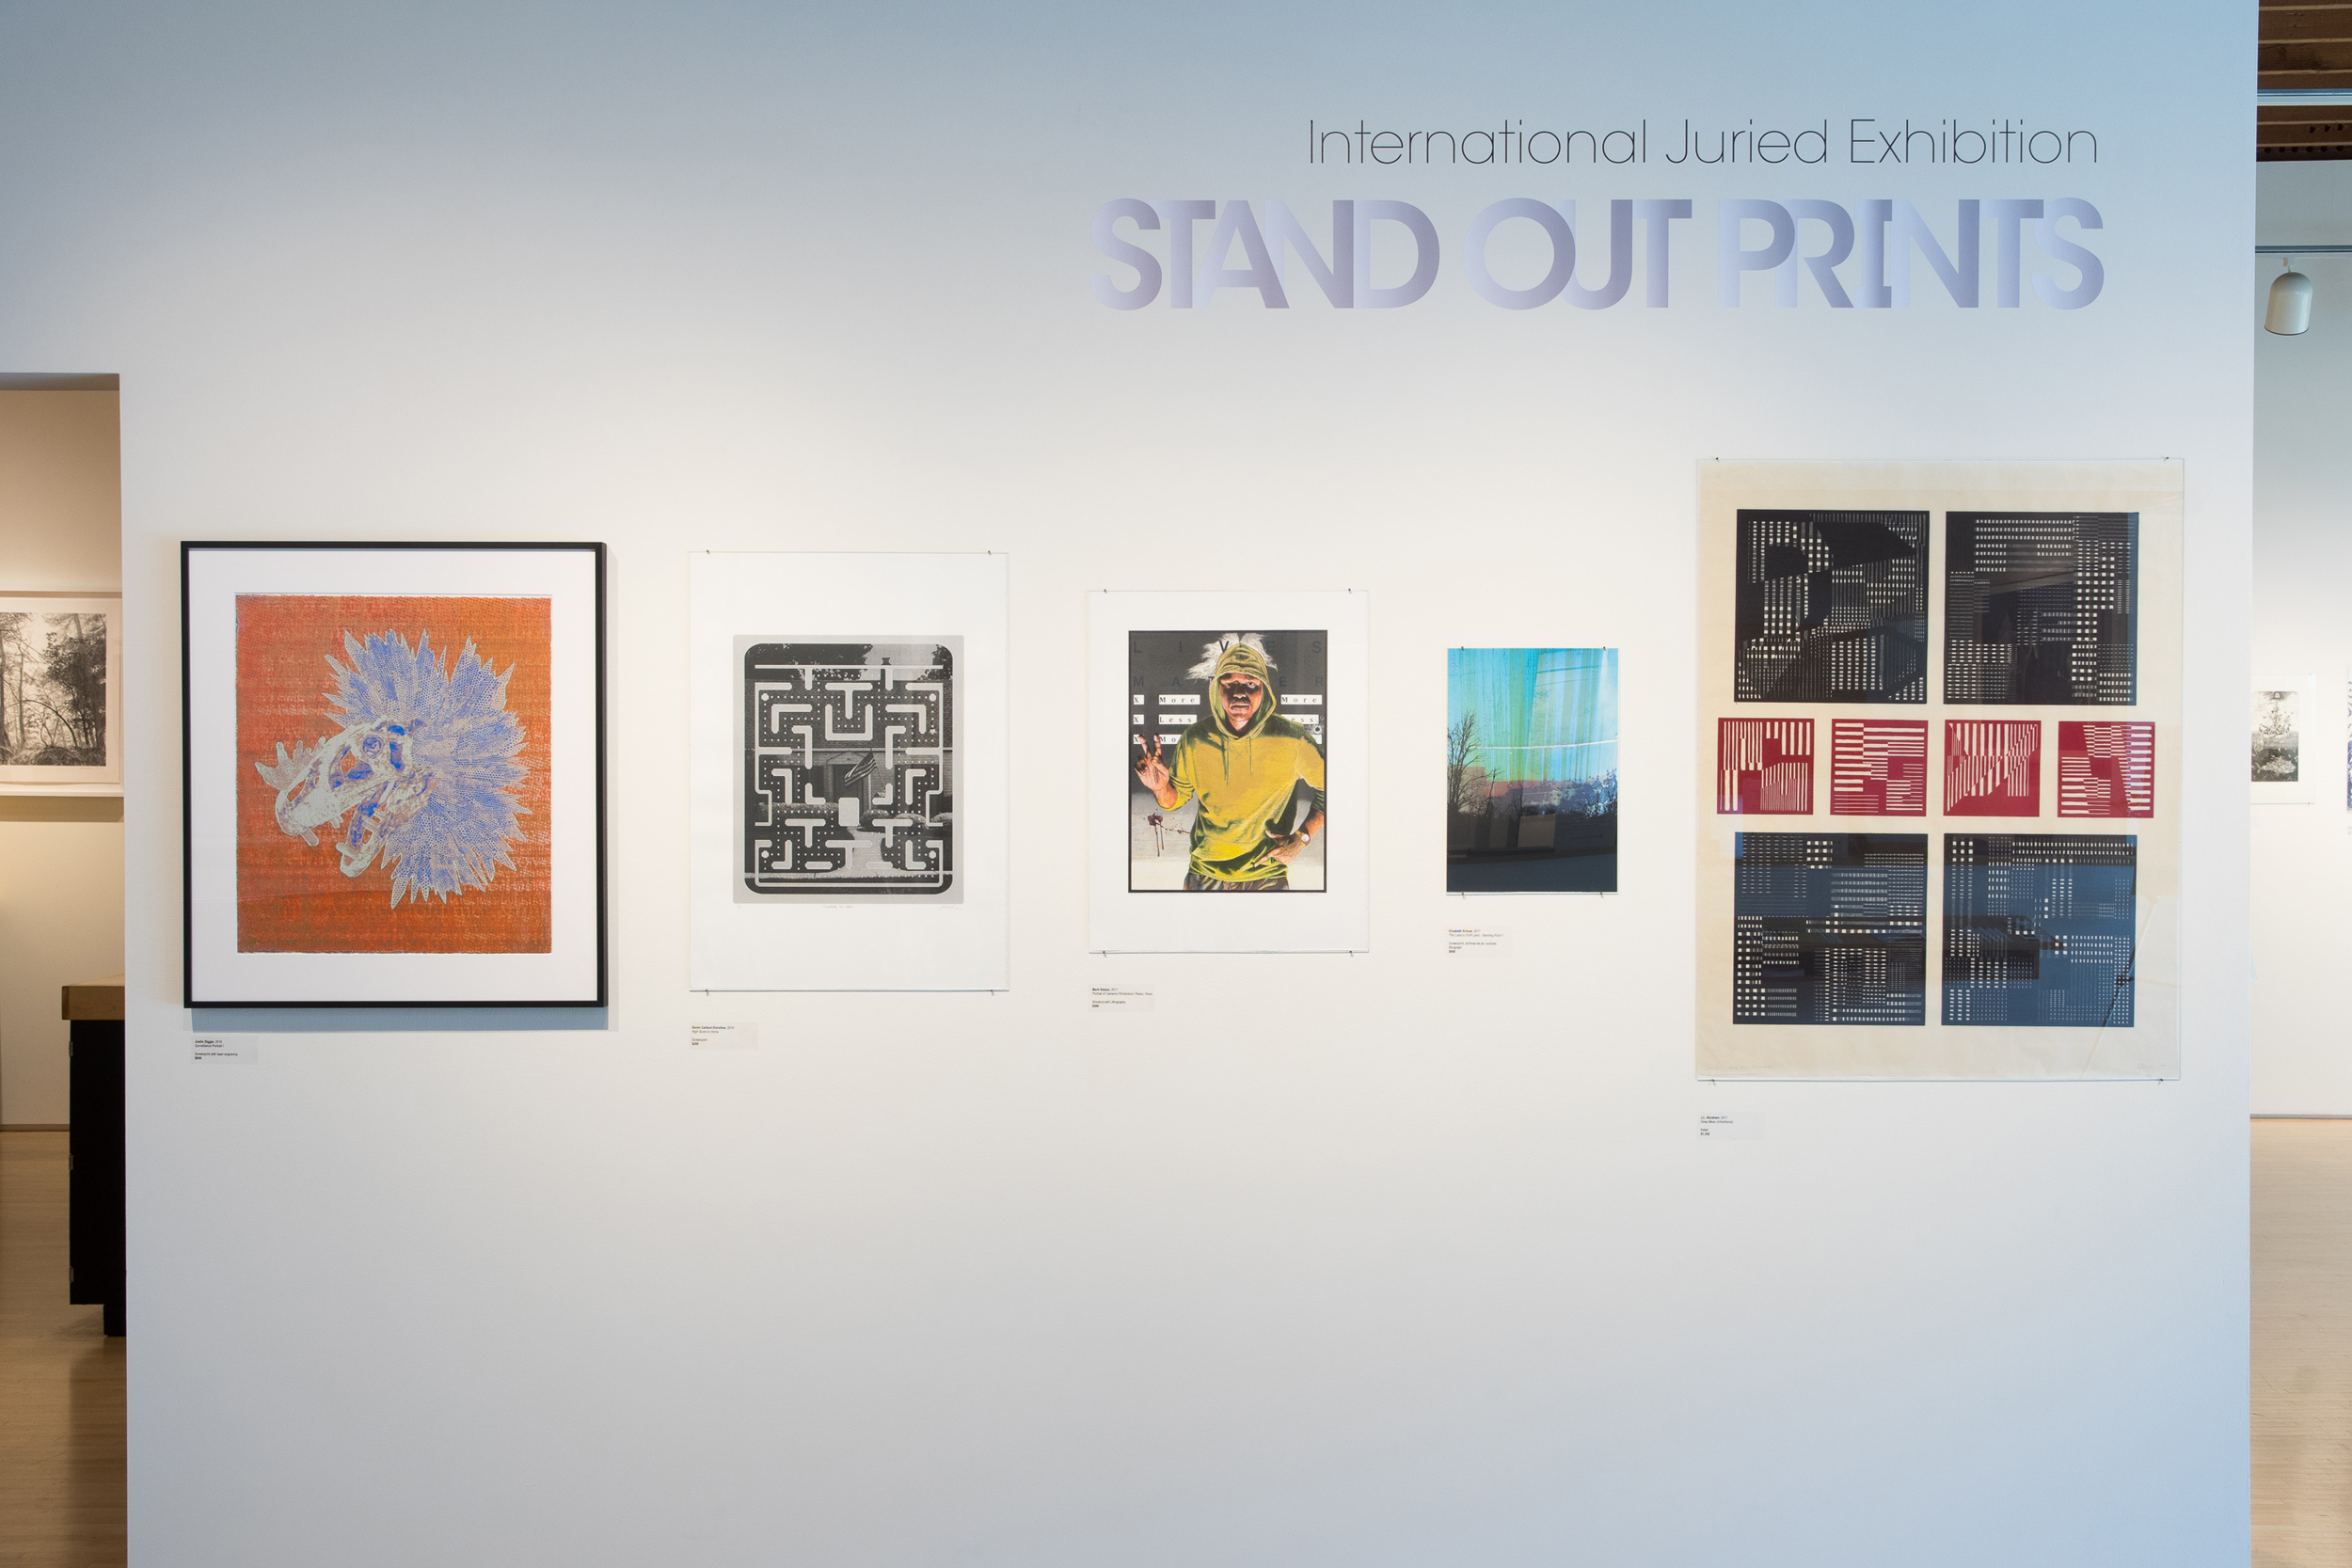 Highpoint PrintmakingStand Out Prints Exhibit180927a0191.JPG